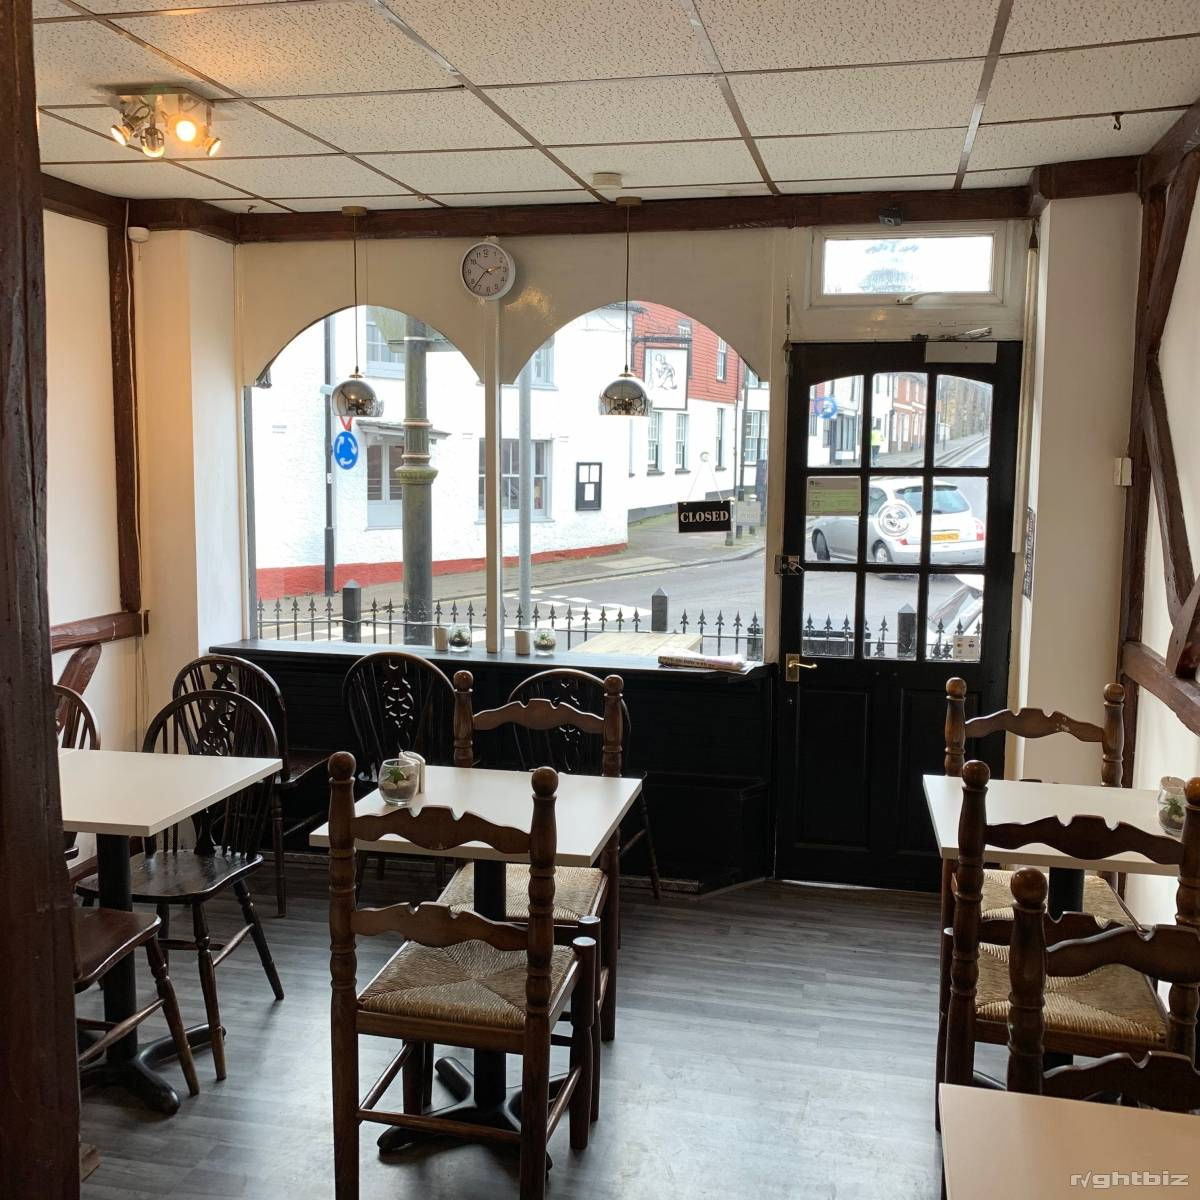 Thai/British Cafe for sale with A3 permission Reduced price - £5k annual rent - Image 2